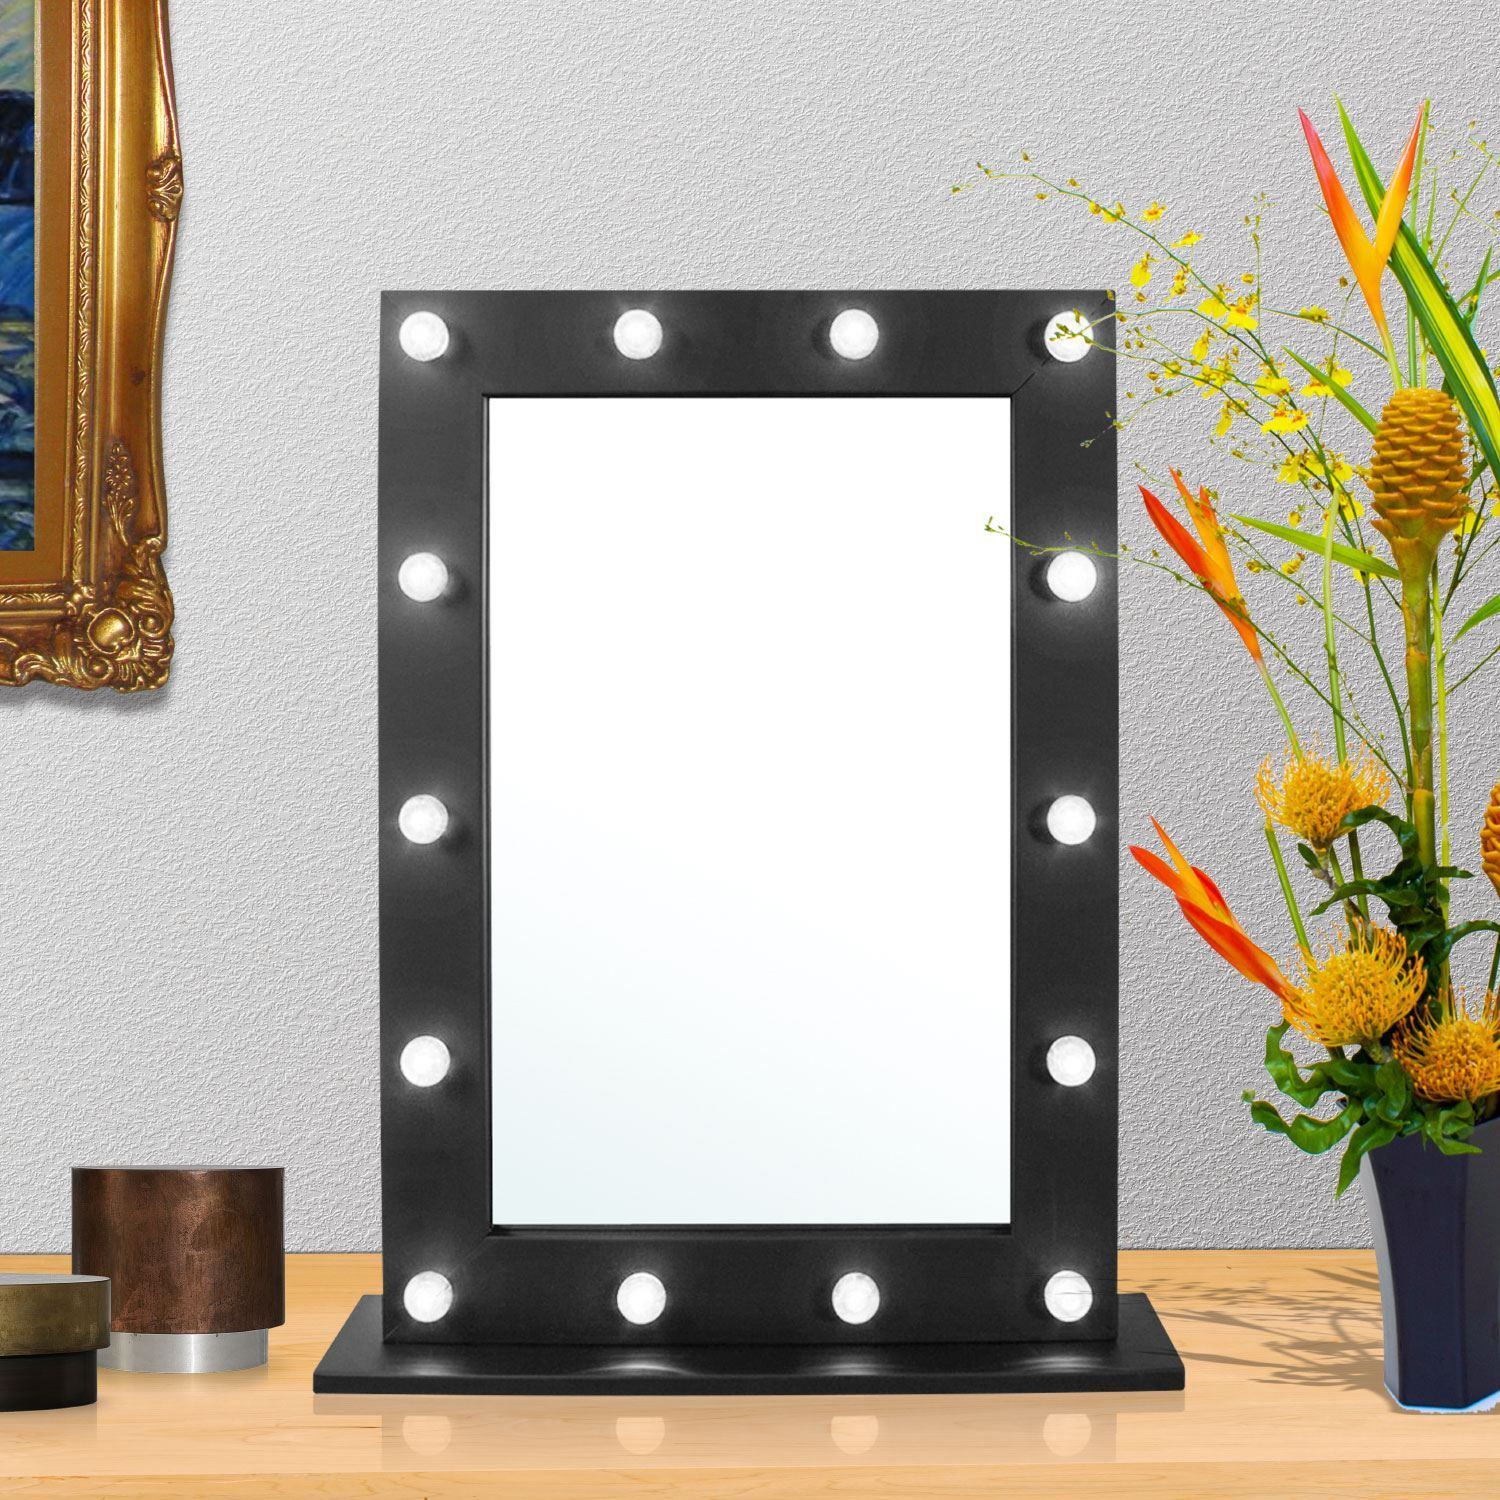 Light up dressing table hollywood led mirror bulbs make up vanity mirror black